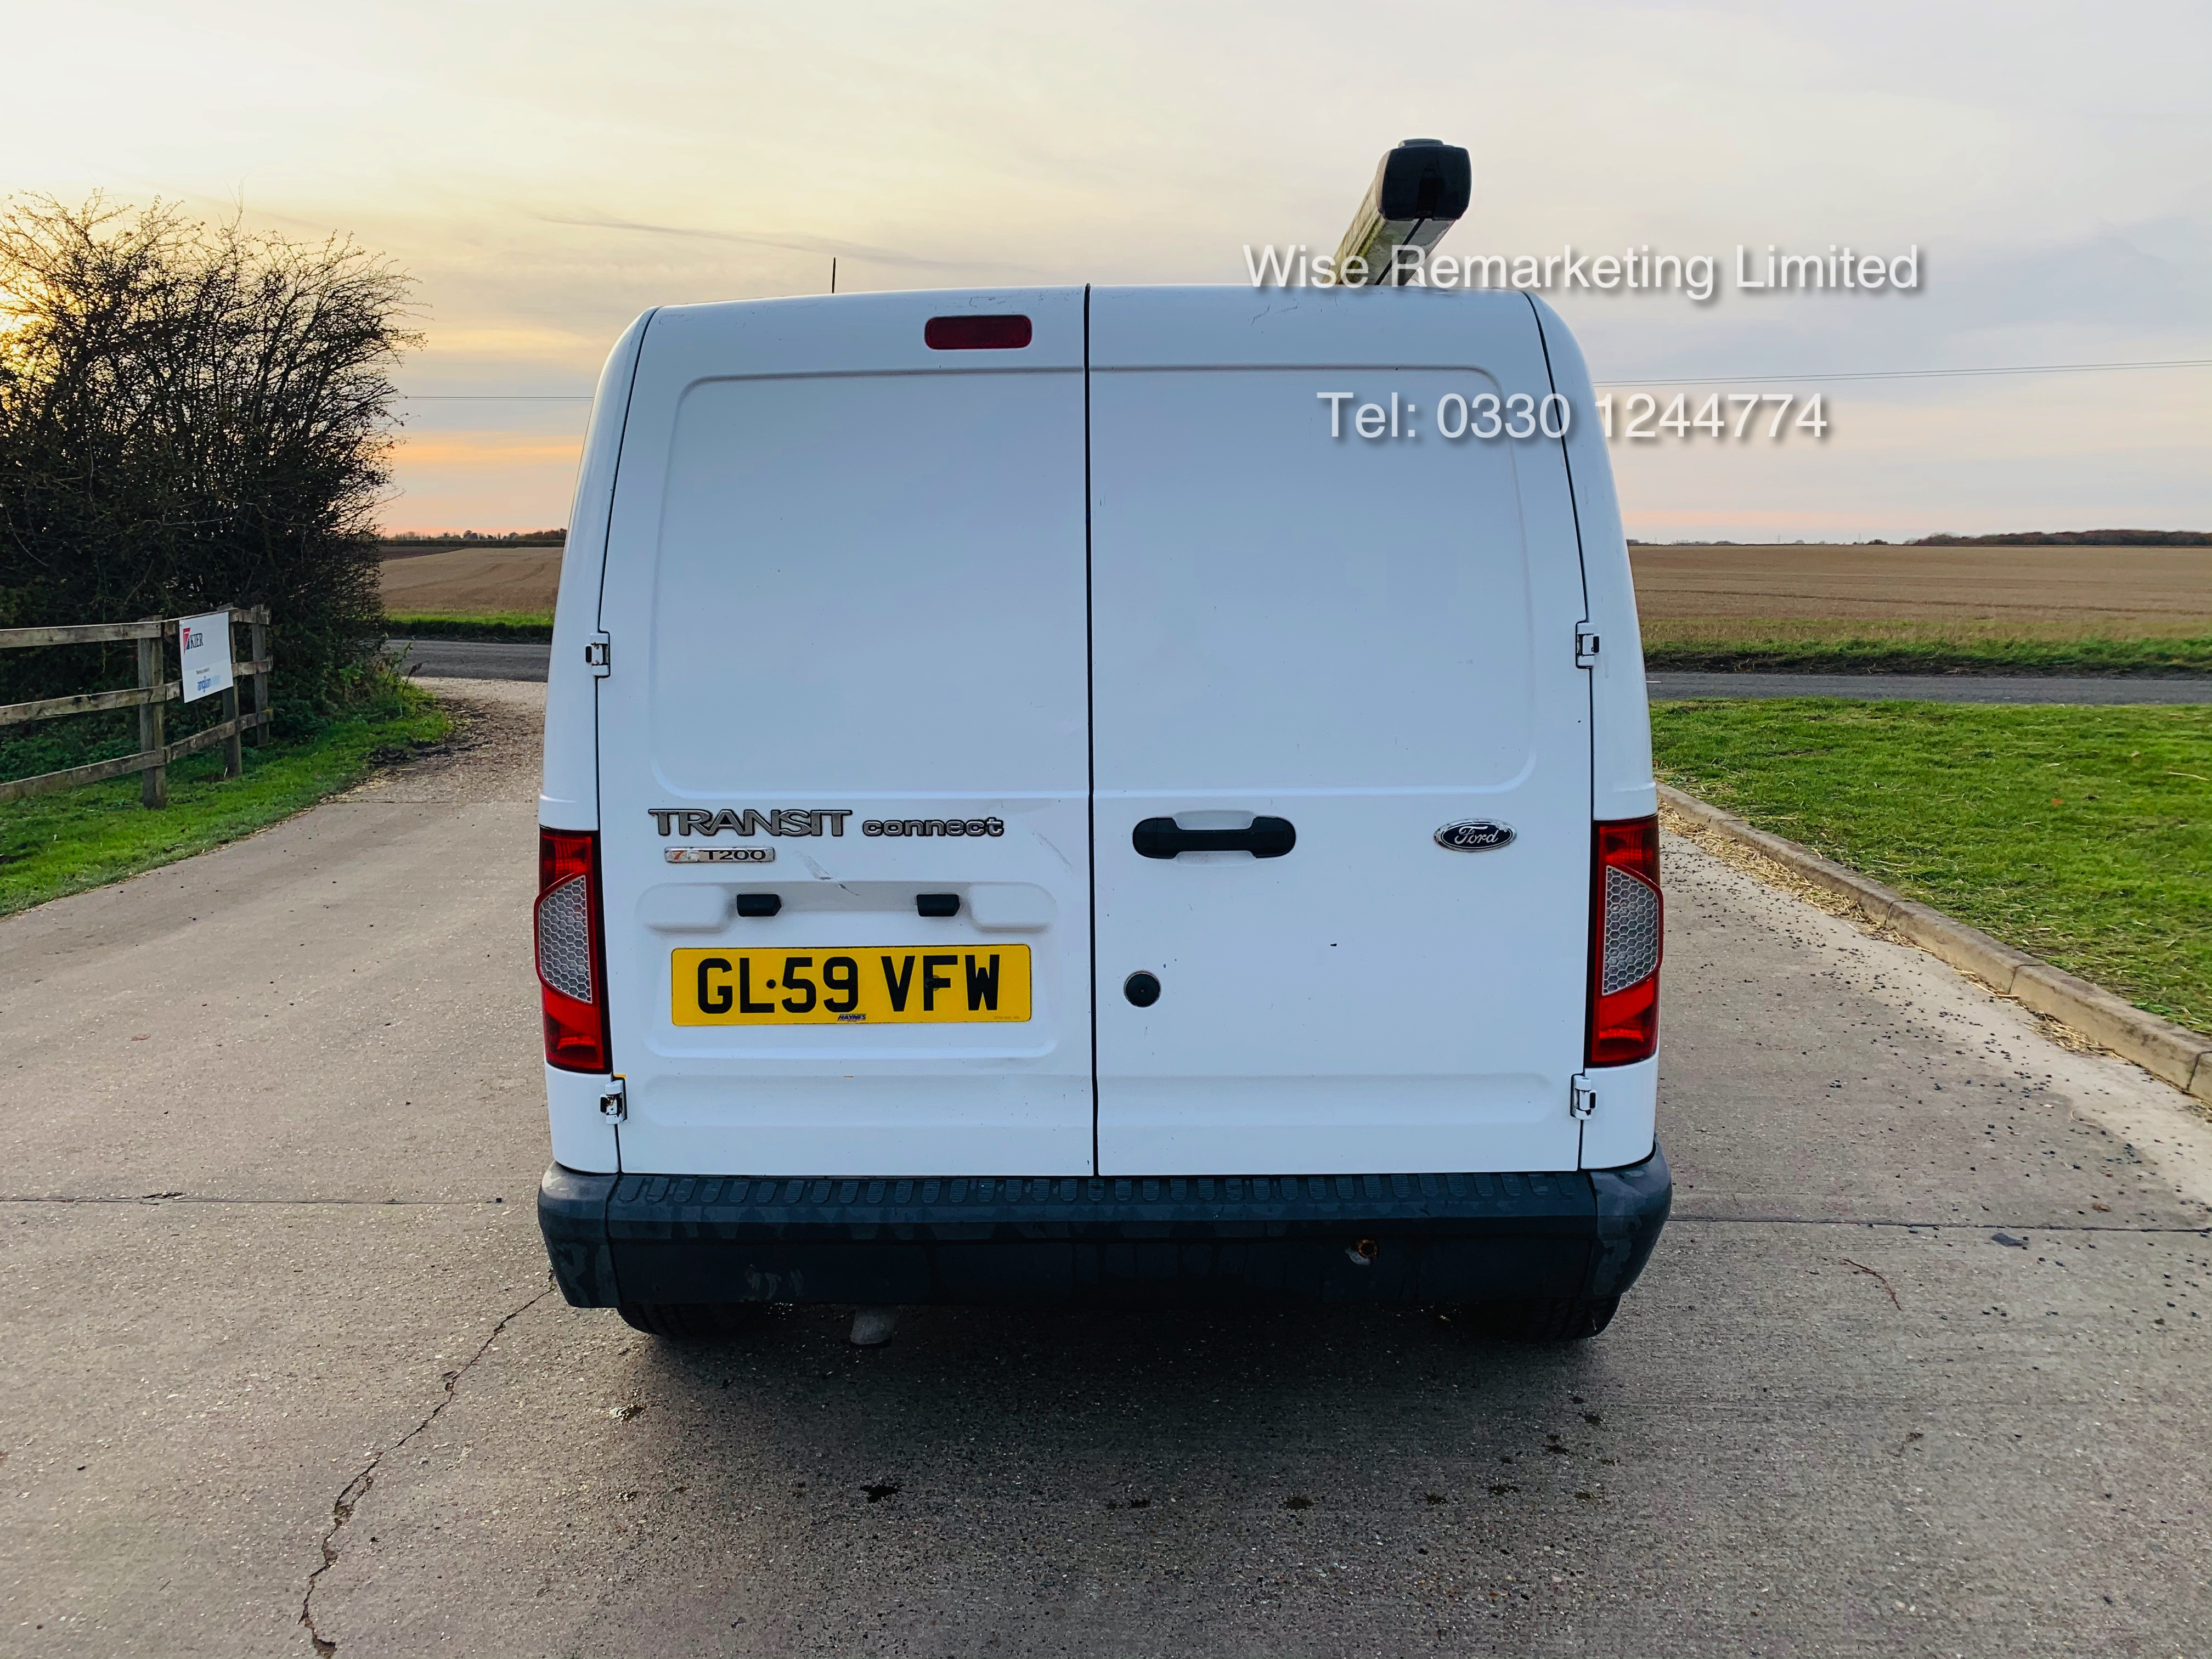 Ford Transit Connect T200 1.8 - 2010 Model - Side Loading Door - Ply Lined - Image 6 of 19